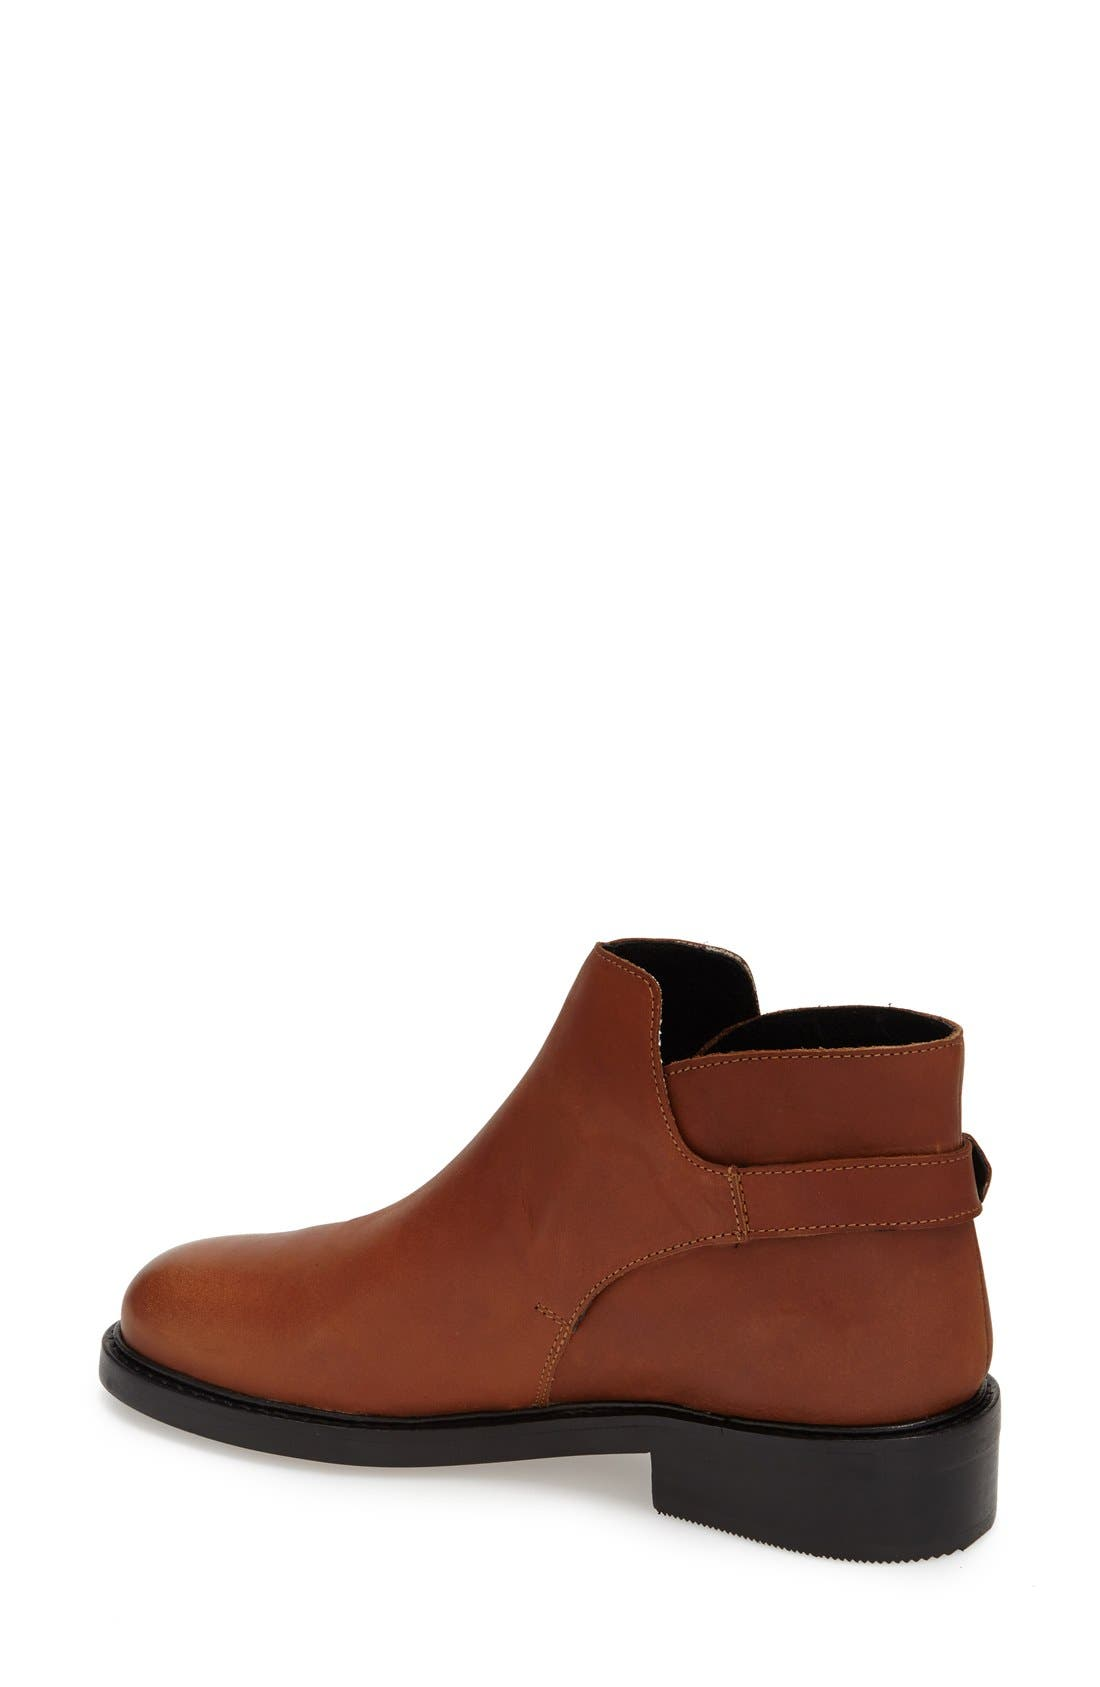 Alternate Image 2  - Topshop 'Actor' Leather Ankle Boot (Women)